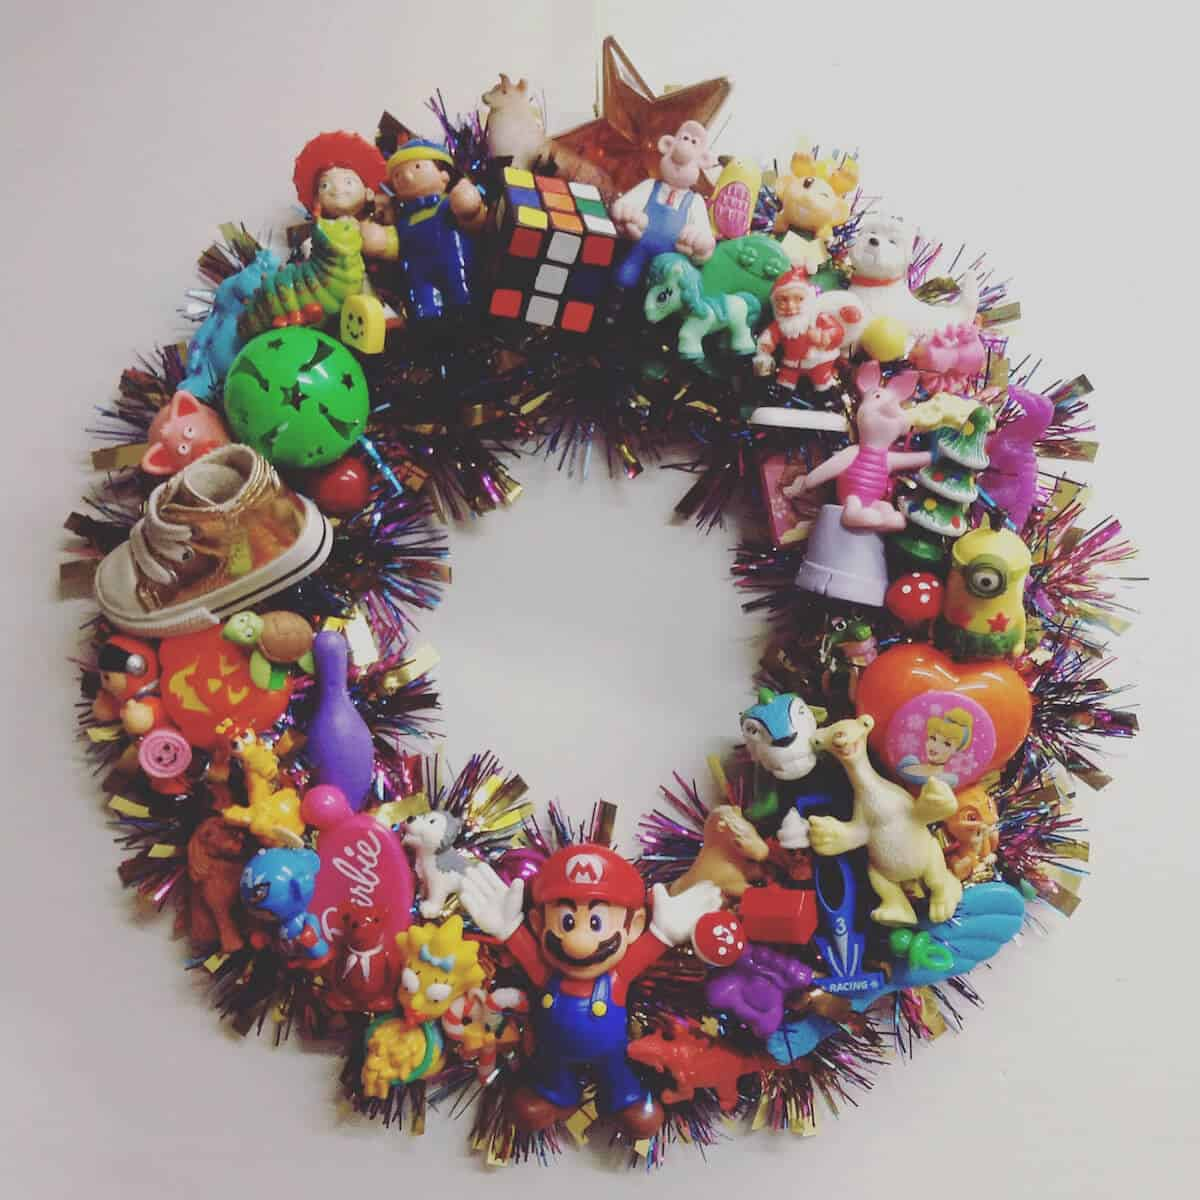 Recycled Christmas Wreath becomes a Toy Memory Wreath (tiffany terry)